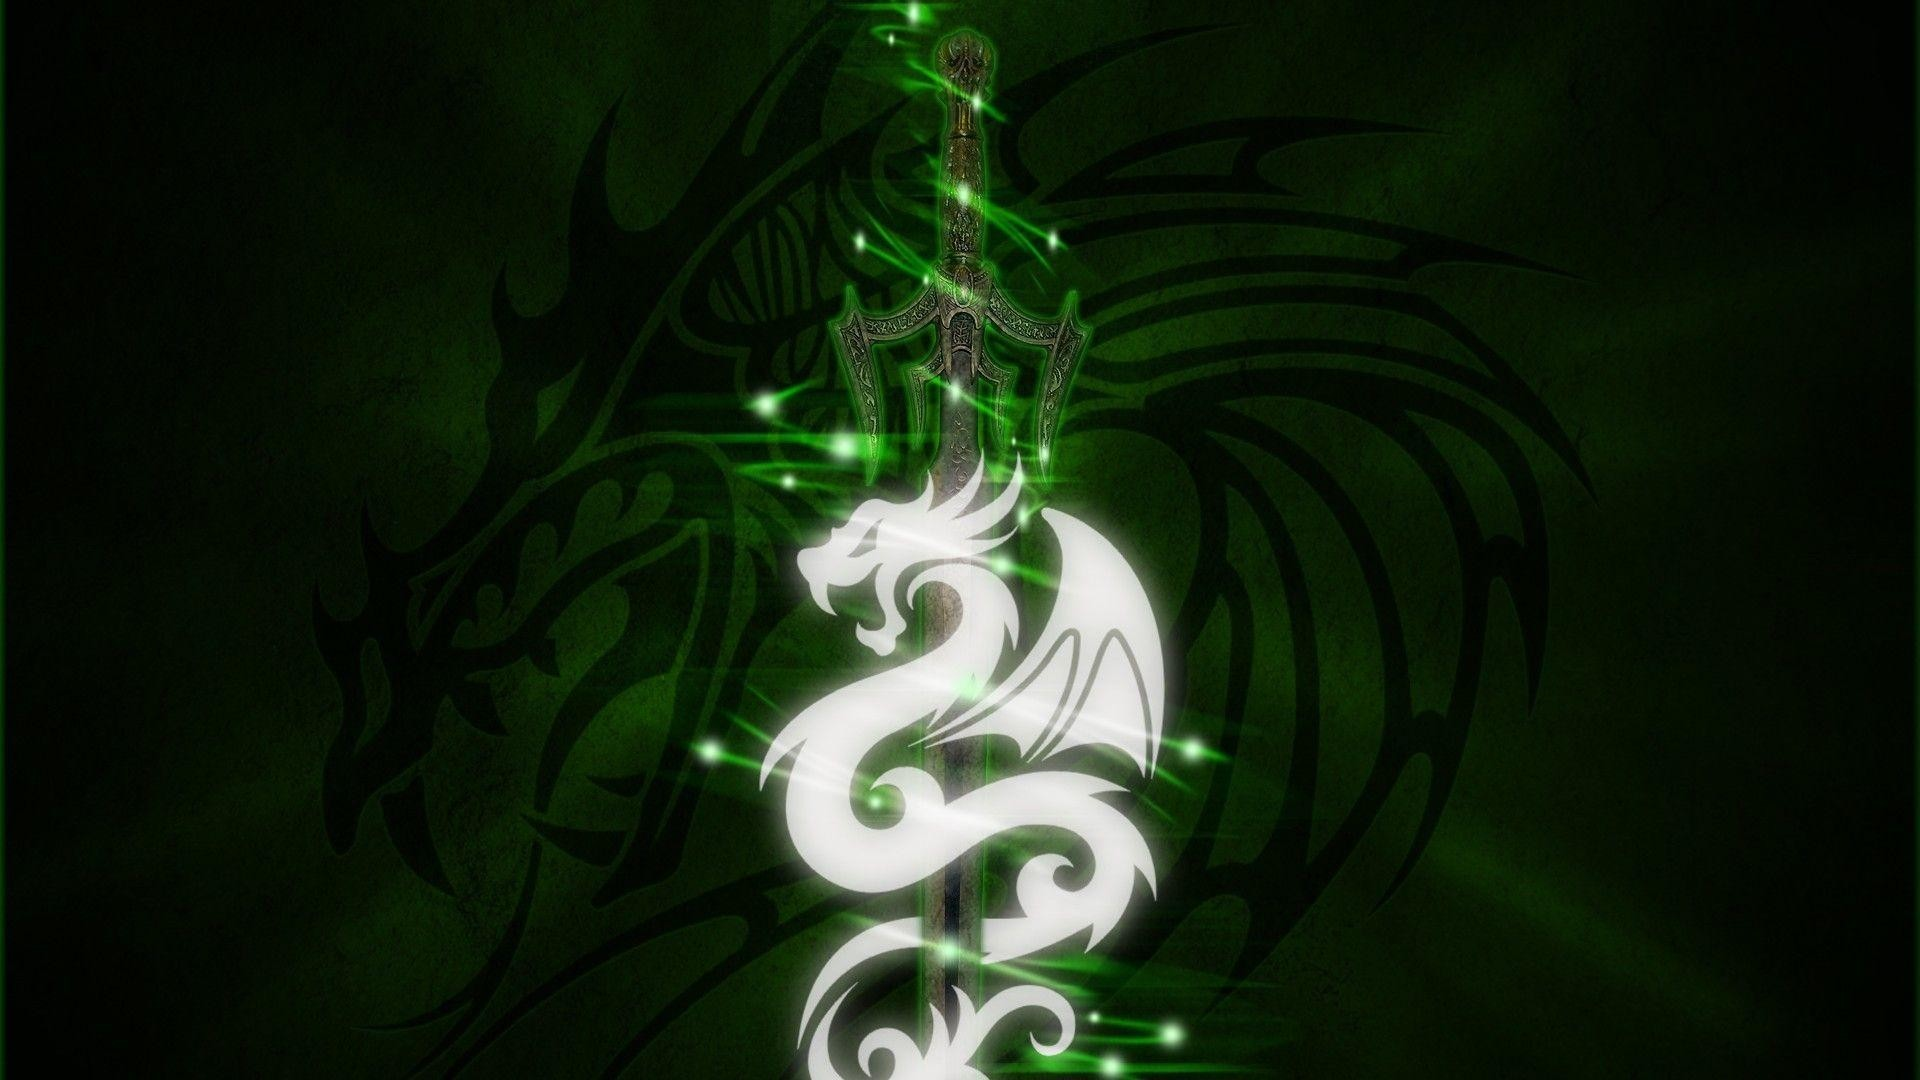 Res: 1920x1080, Wallpapers For > Green Dragon Wallpapers Hd